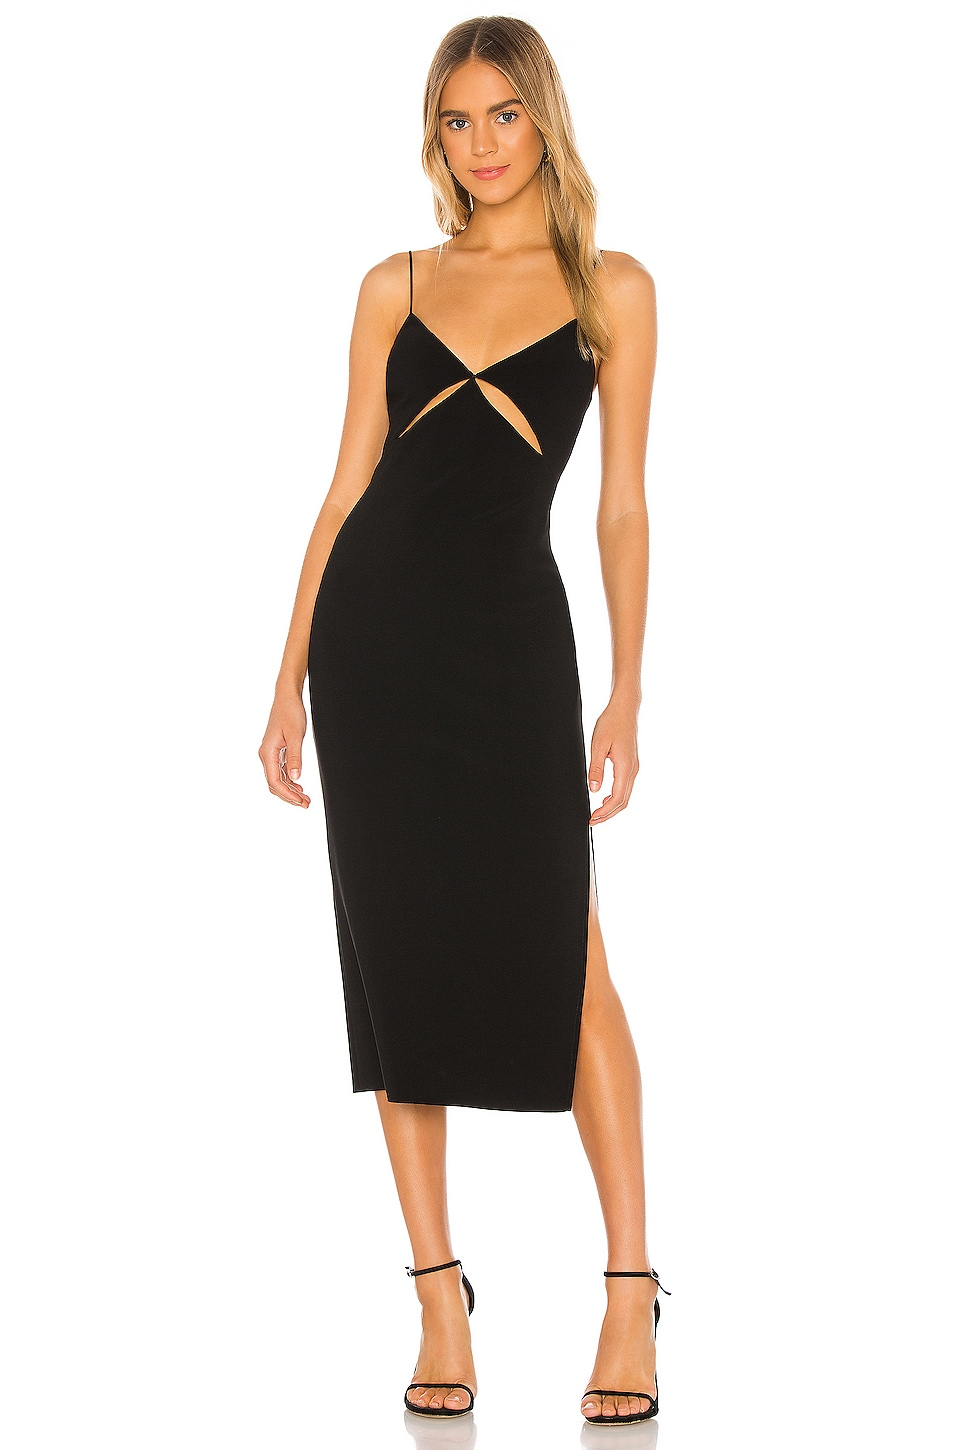 Emerald Avenue Midi Dress             BEC&BRIDGE                                                                                                       CA$ 407.23 16